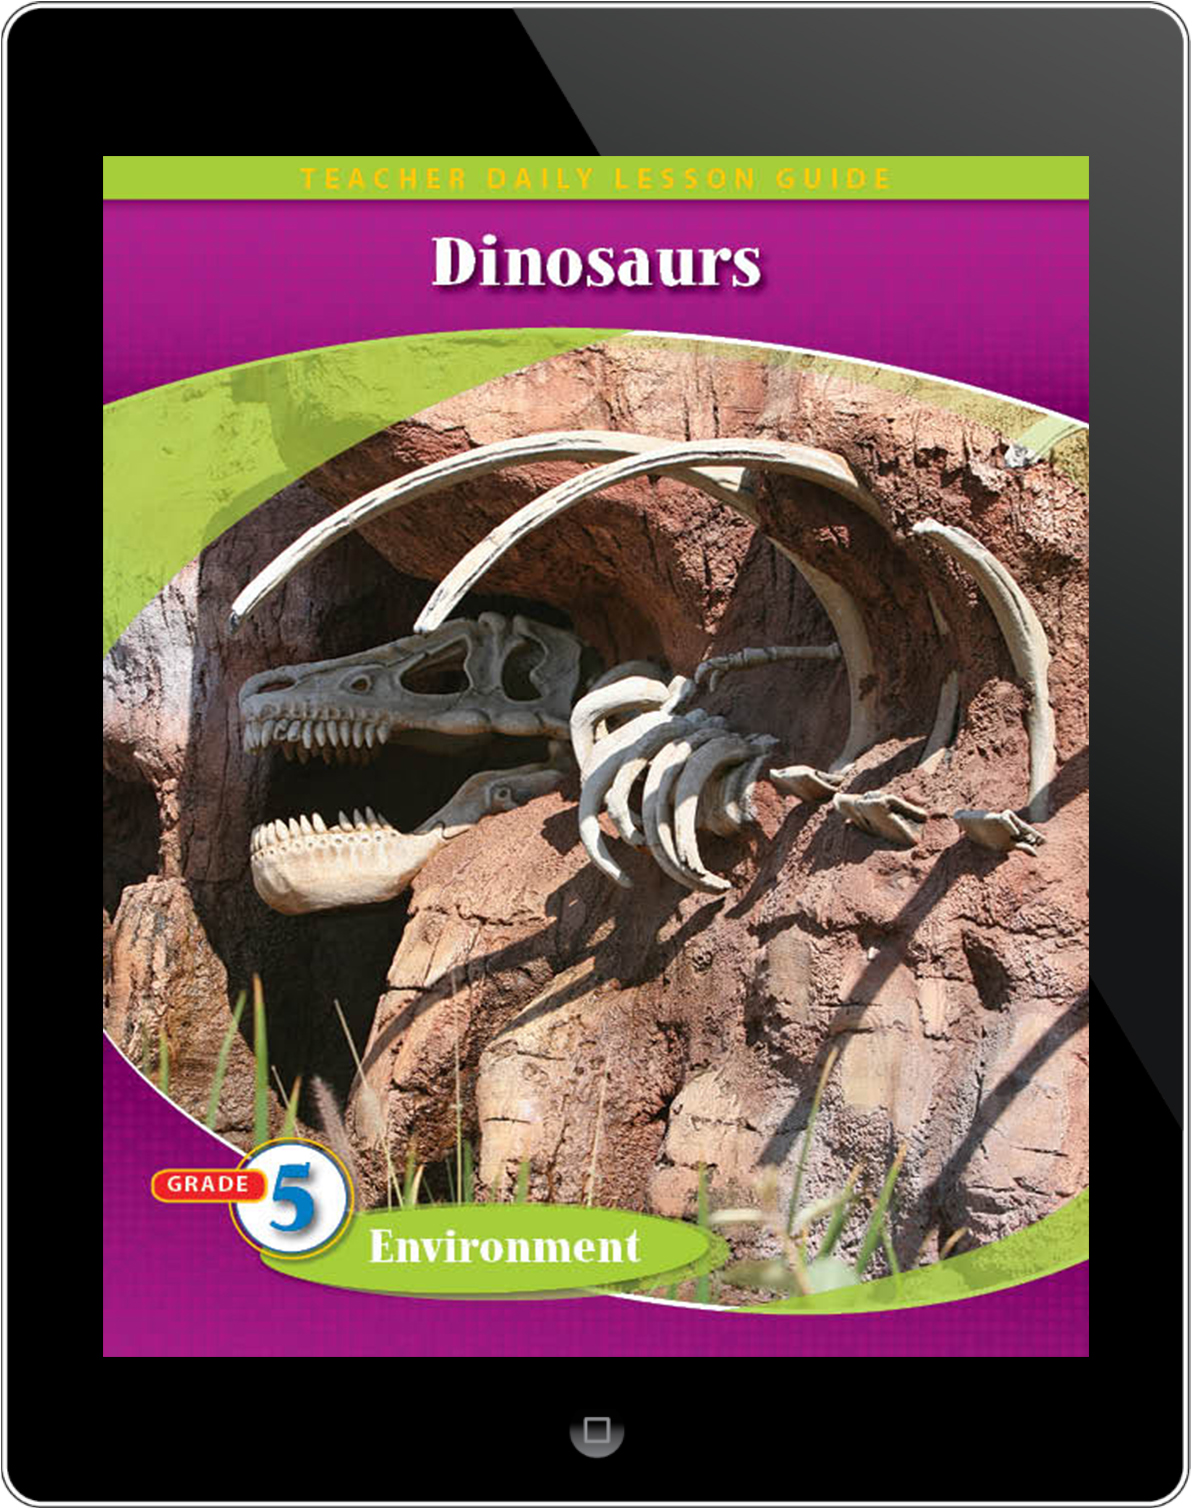 Pathways2.0 Grade 5 Environment Unit: Dinosaurs Daily Lesson Guide 5 Year License